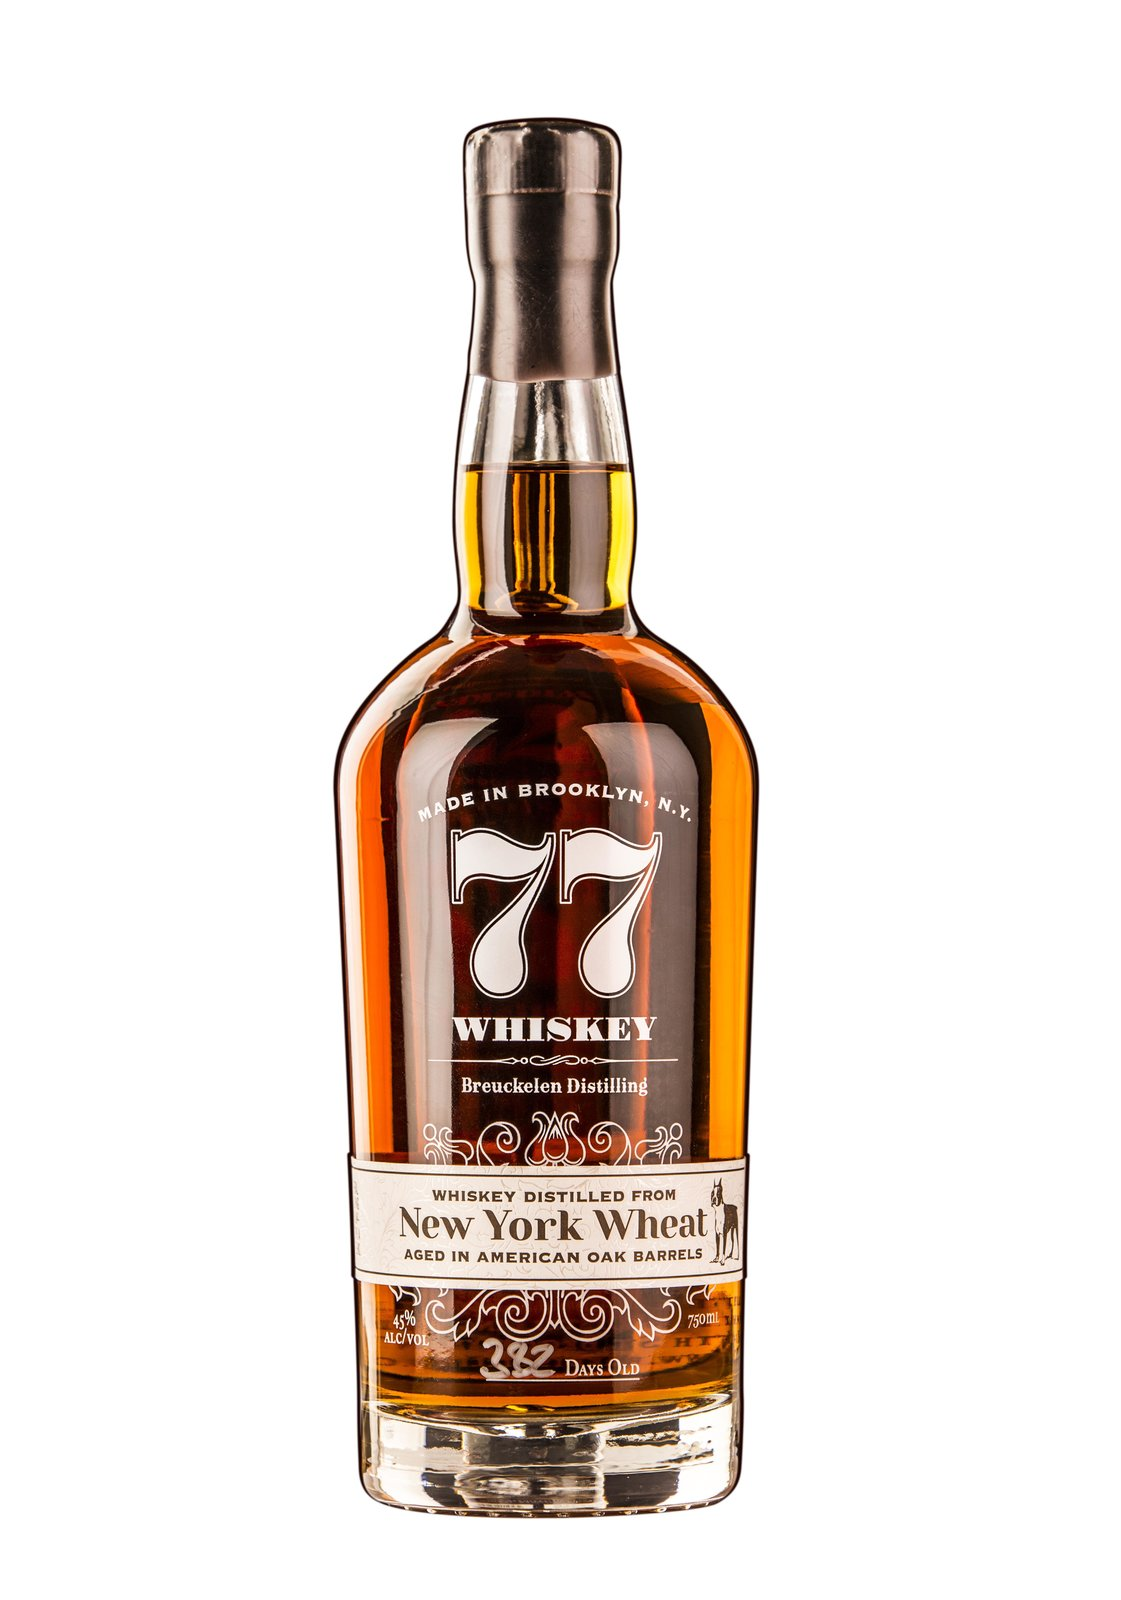 Breuckelen Distilling 77 Whiskey, $41.99  Photo 10 of 12 in Gift Guide: 11 Ways to Lift the Cocktail Lover's Spirits